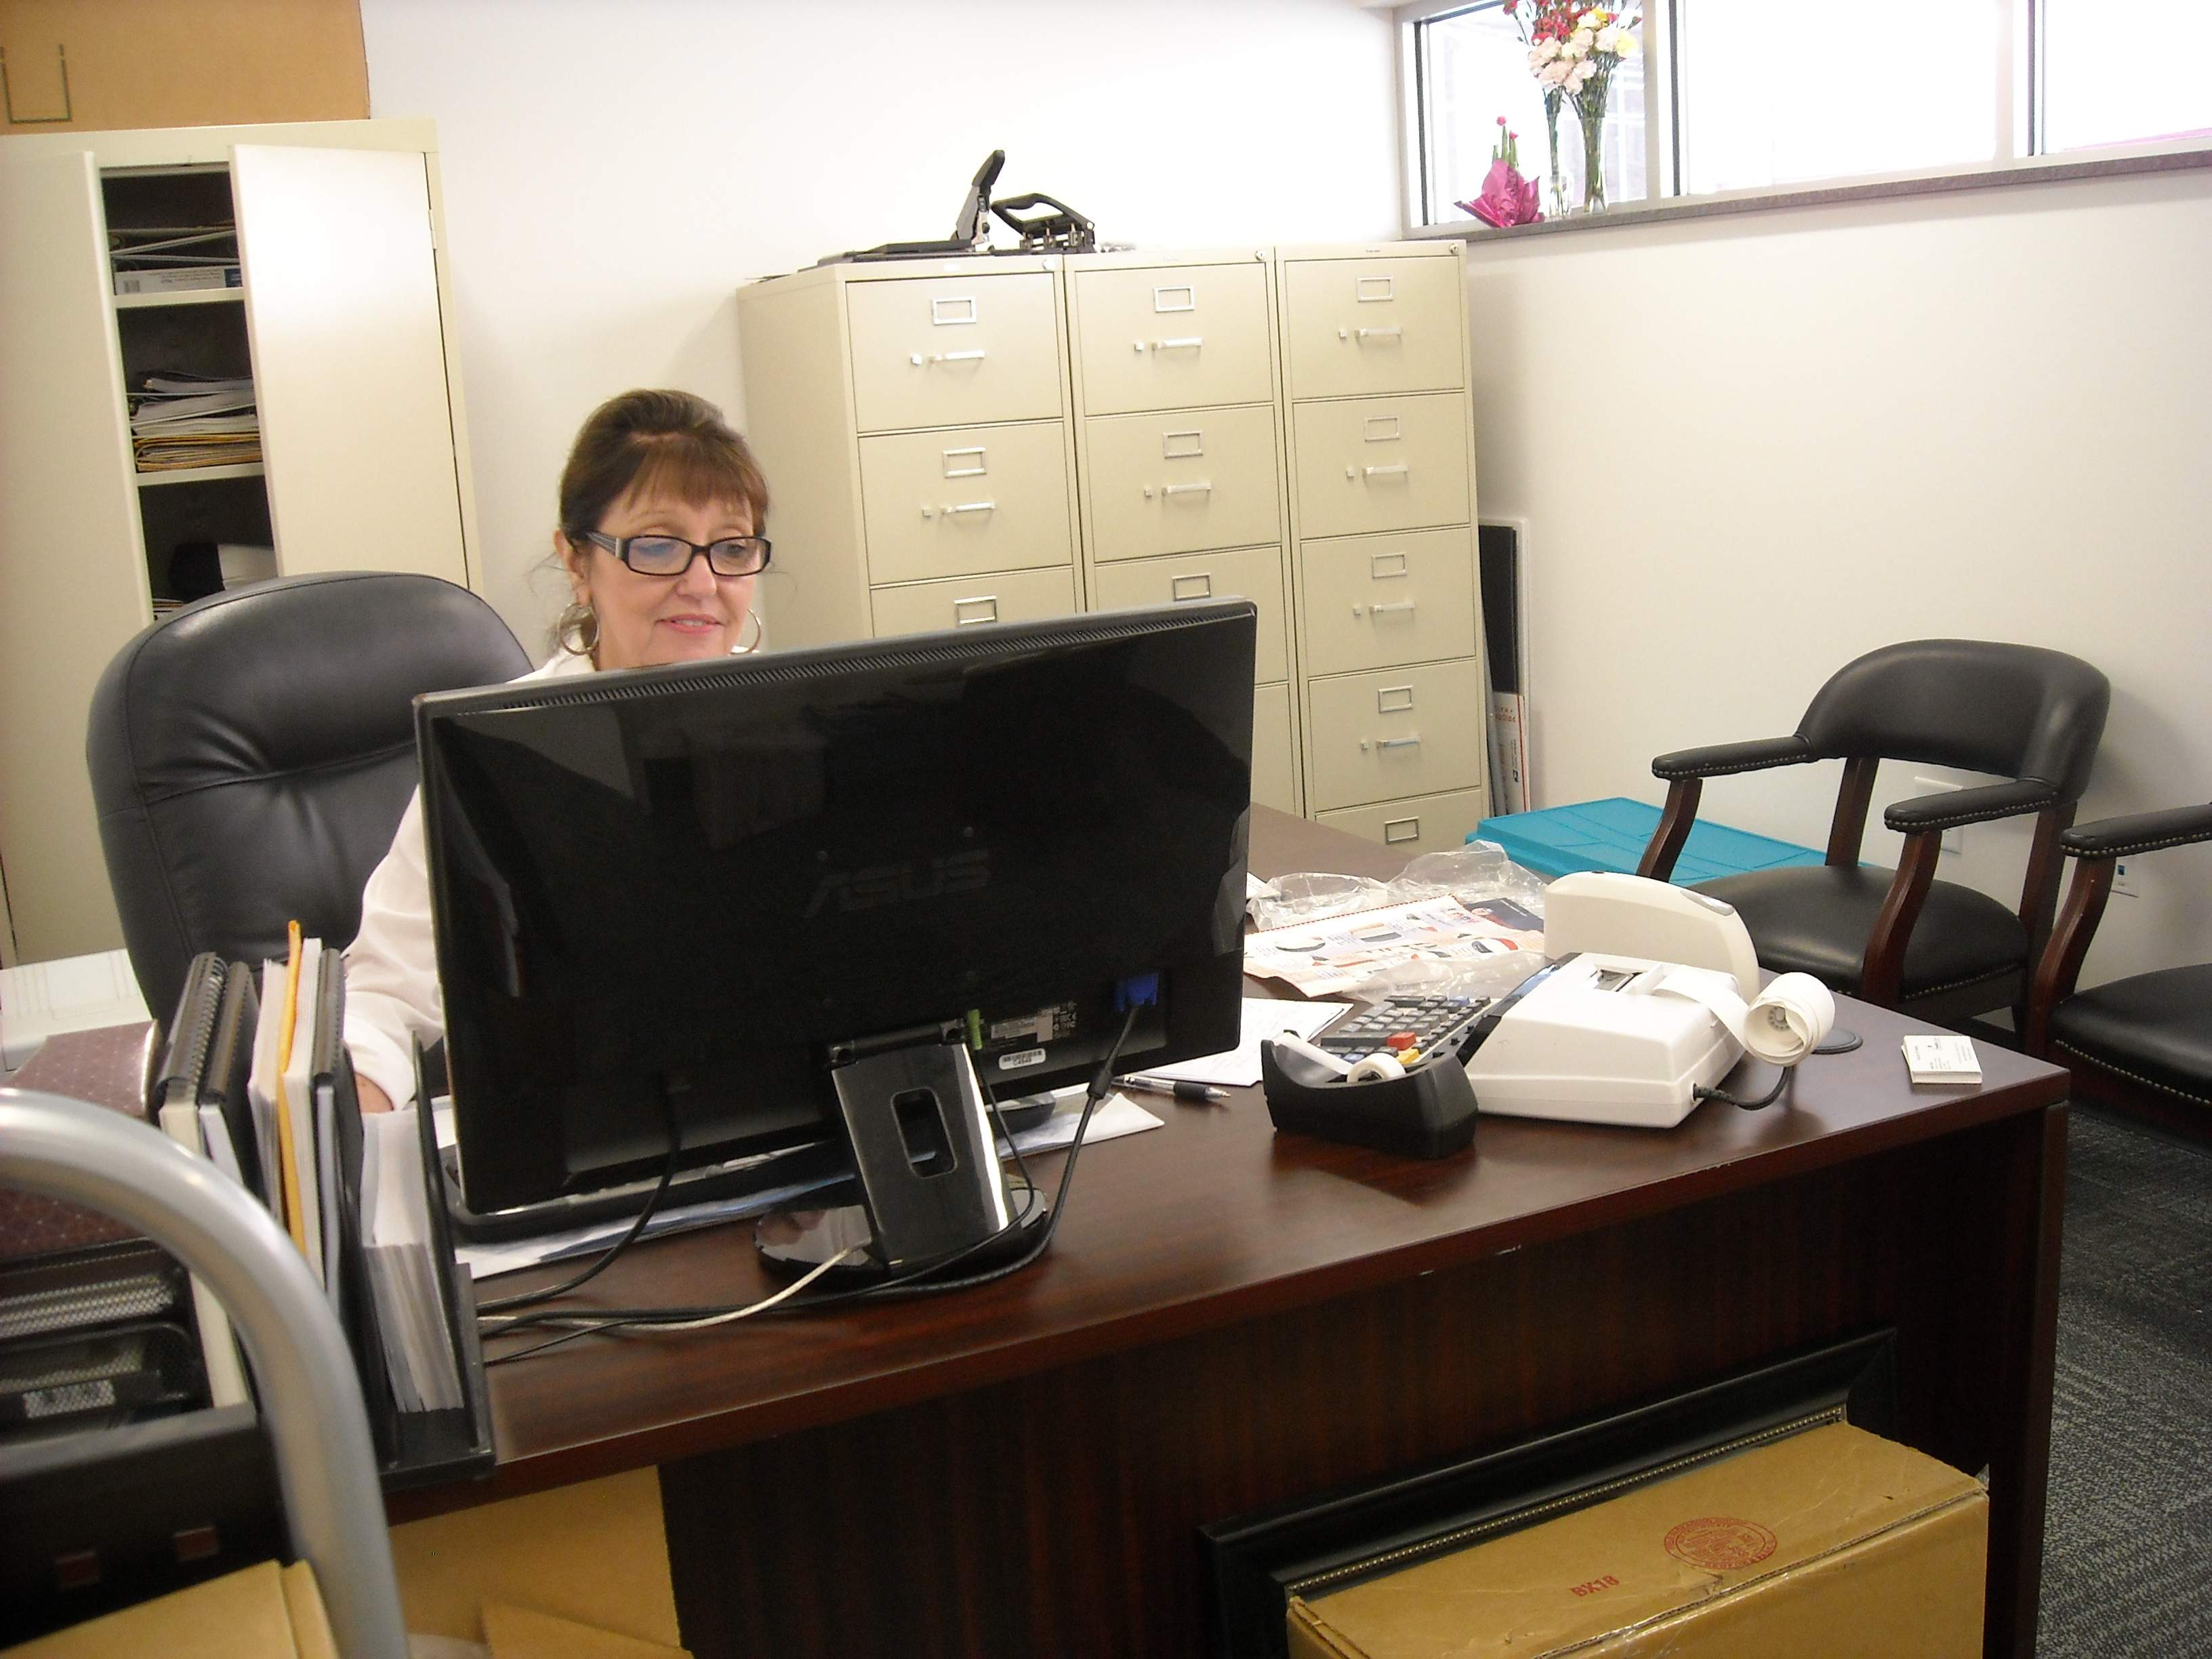 Franklin County Administrative Assistant Gayla Sink works in her new office space at the Campbell Building. Several officeholders have now moved into the renovated facility. River City Construction was awarded the $550,000 contract.